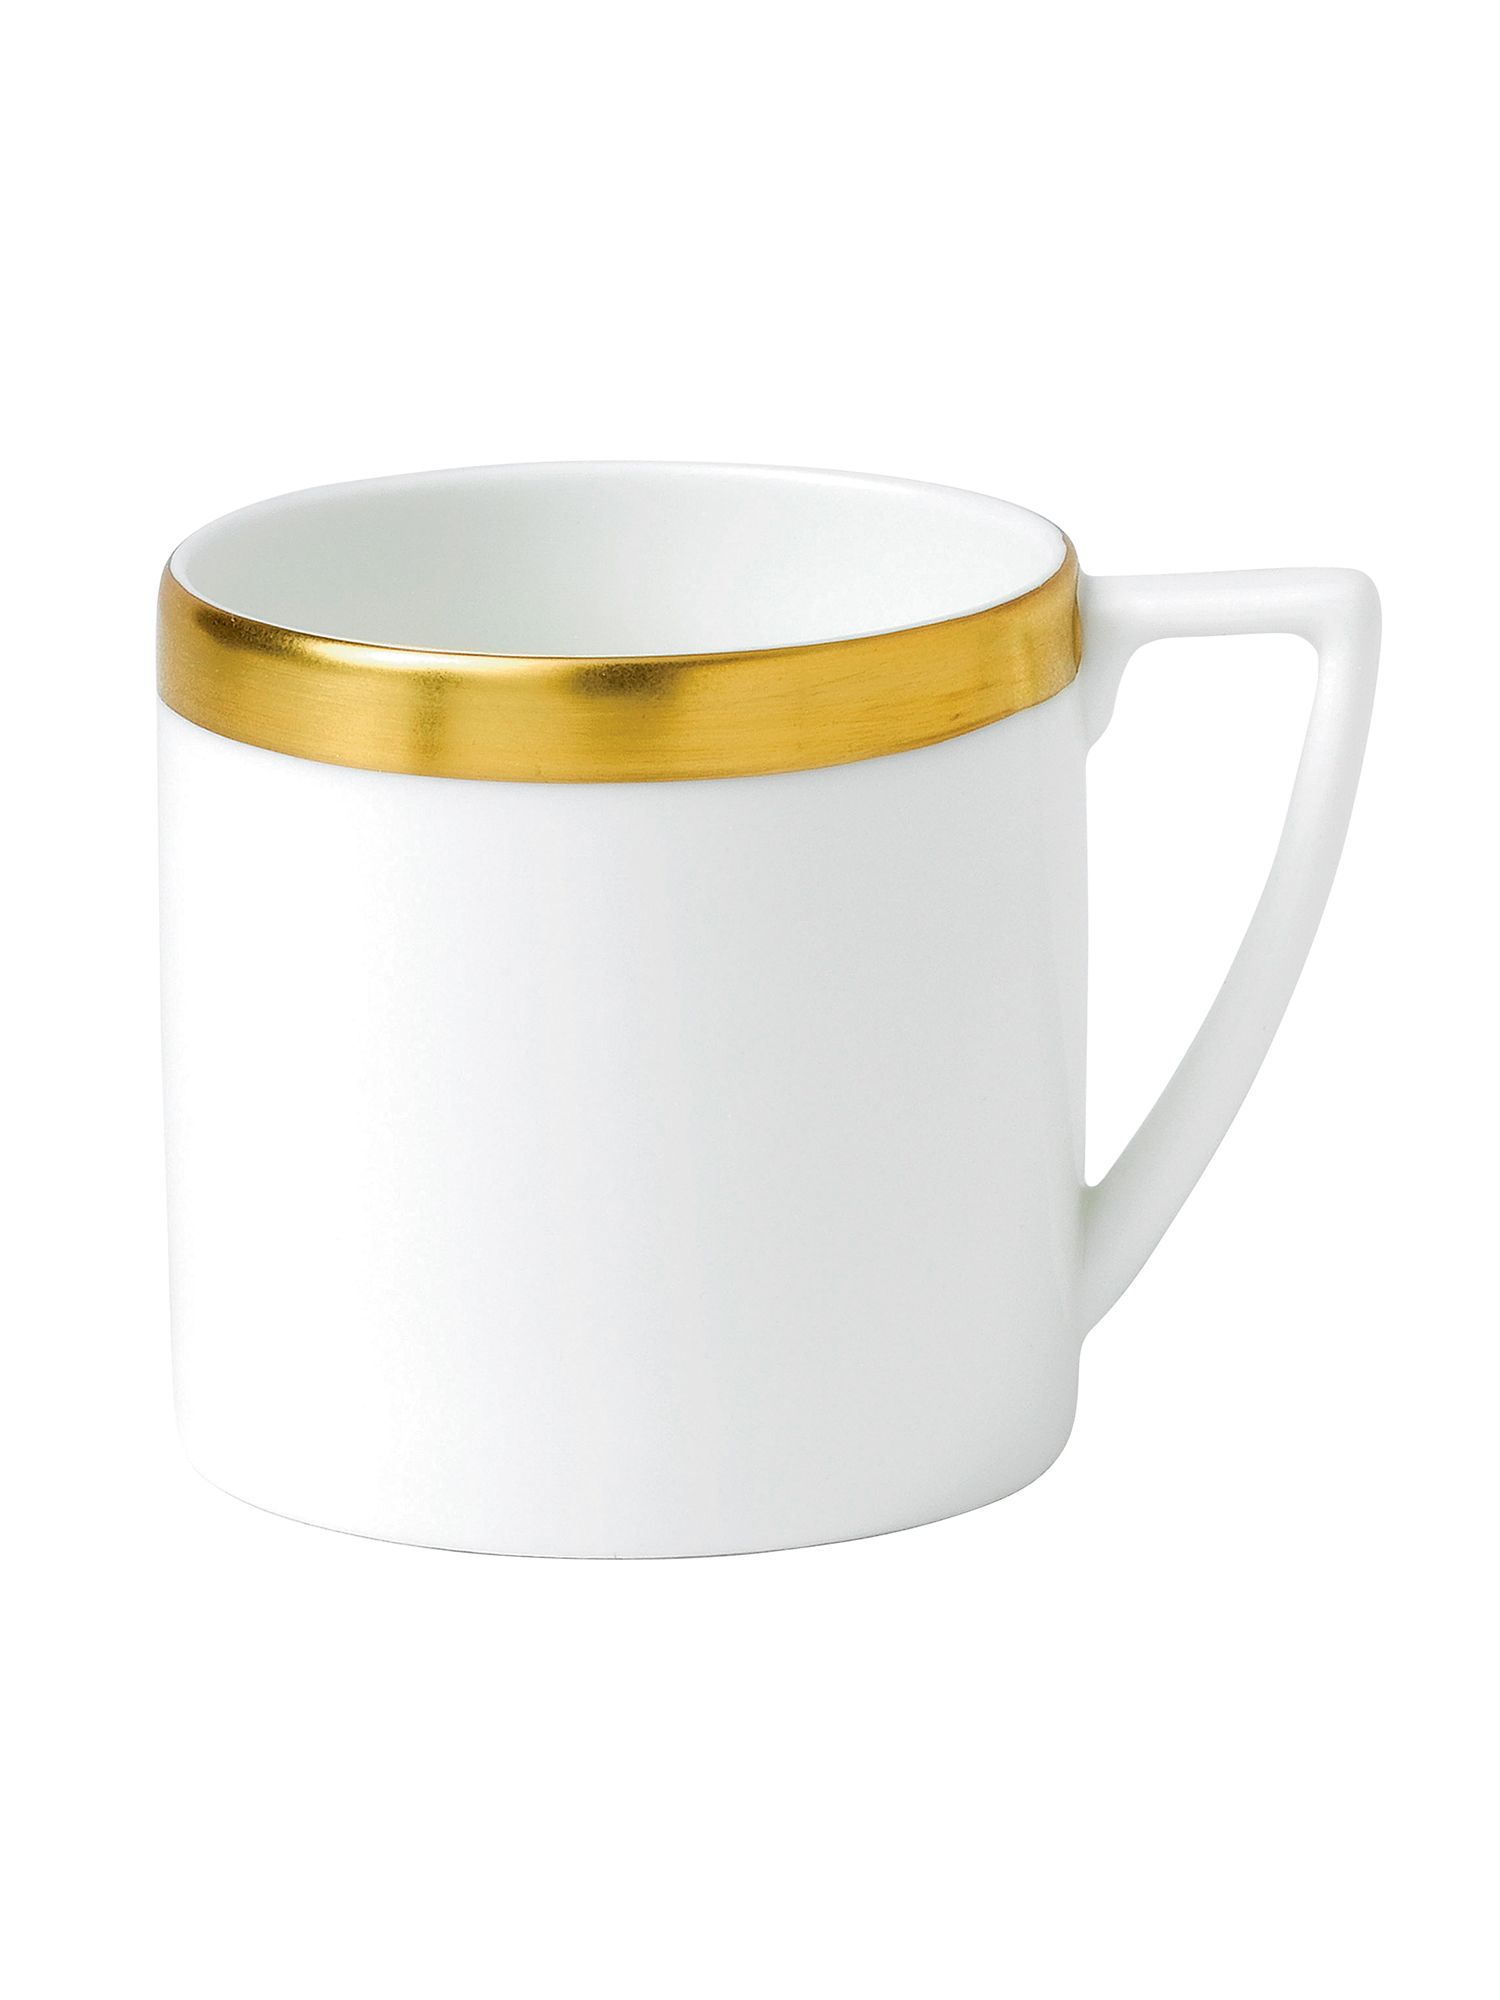 Jasper conran bone china gold banded mini mug 0.2